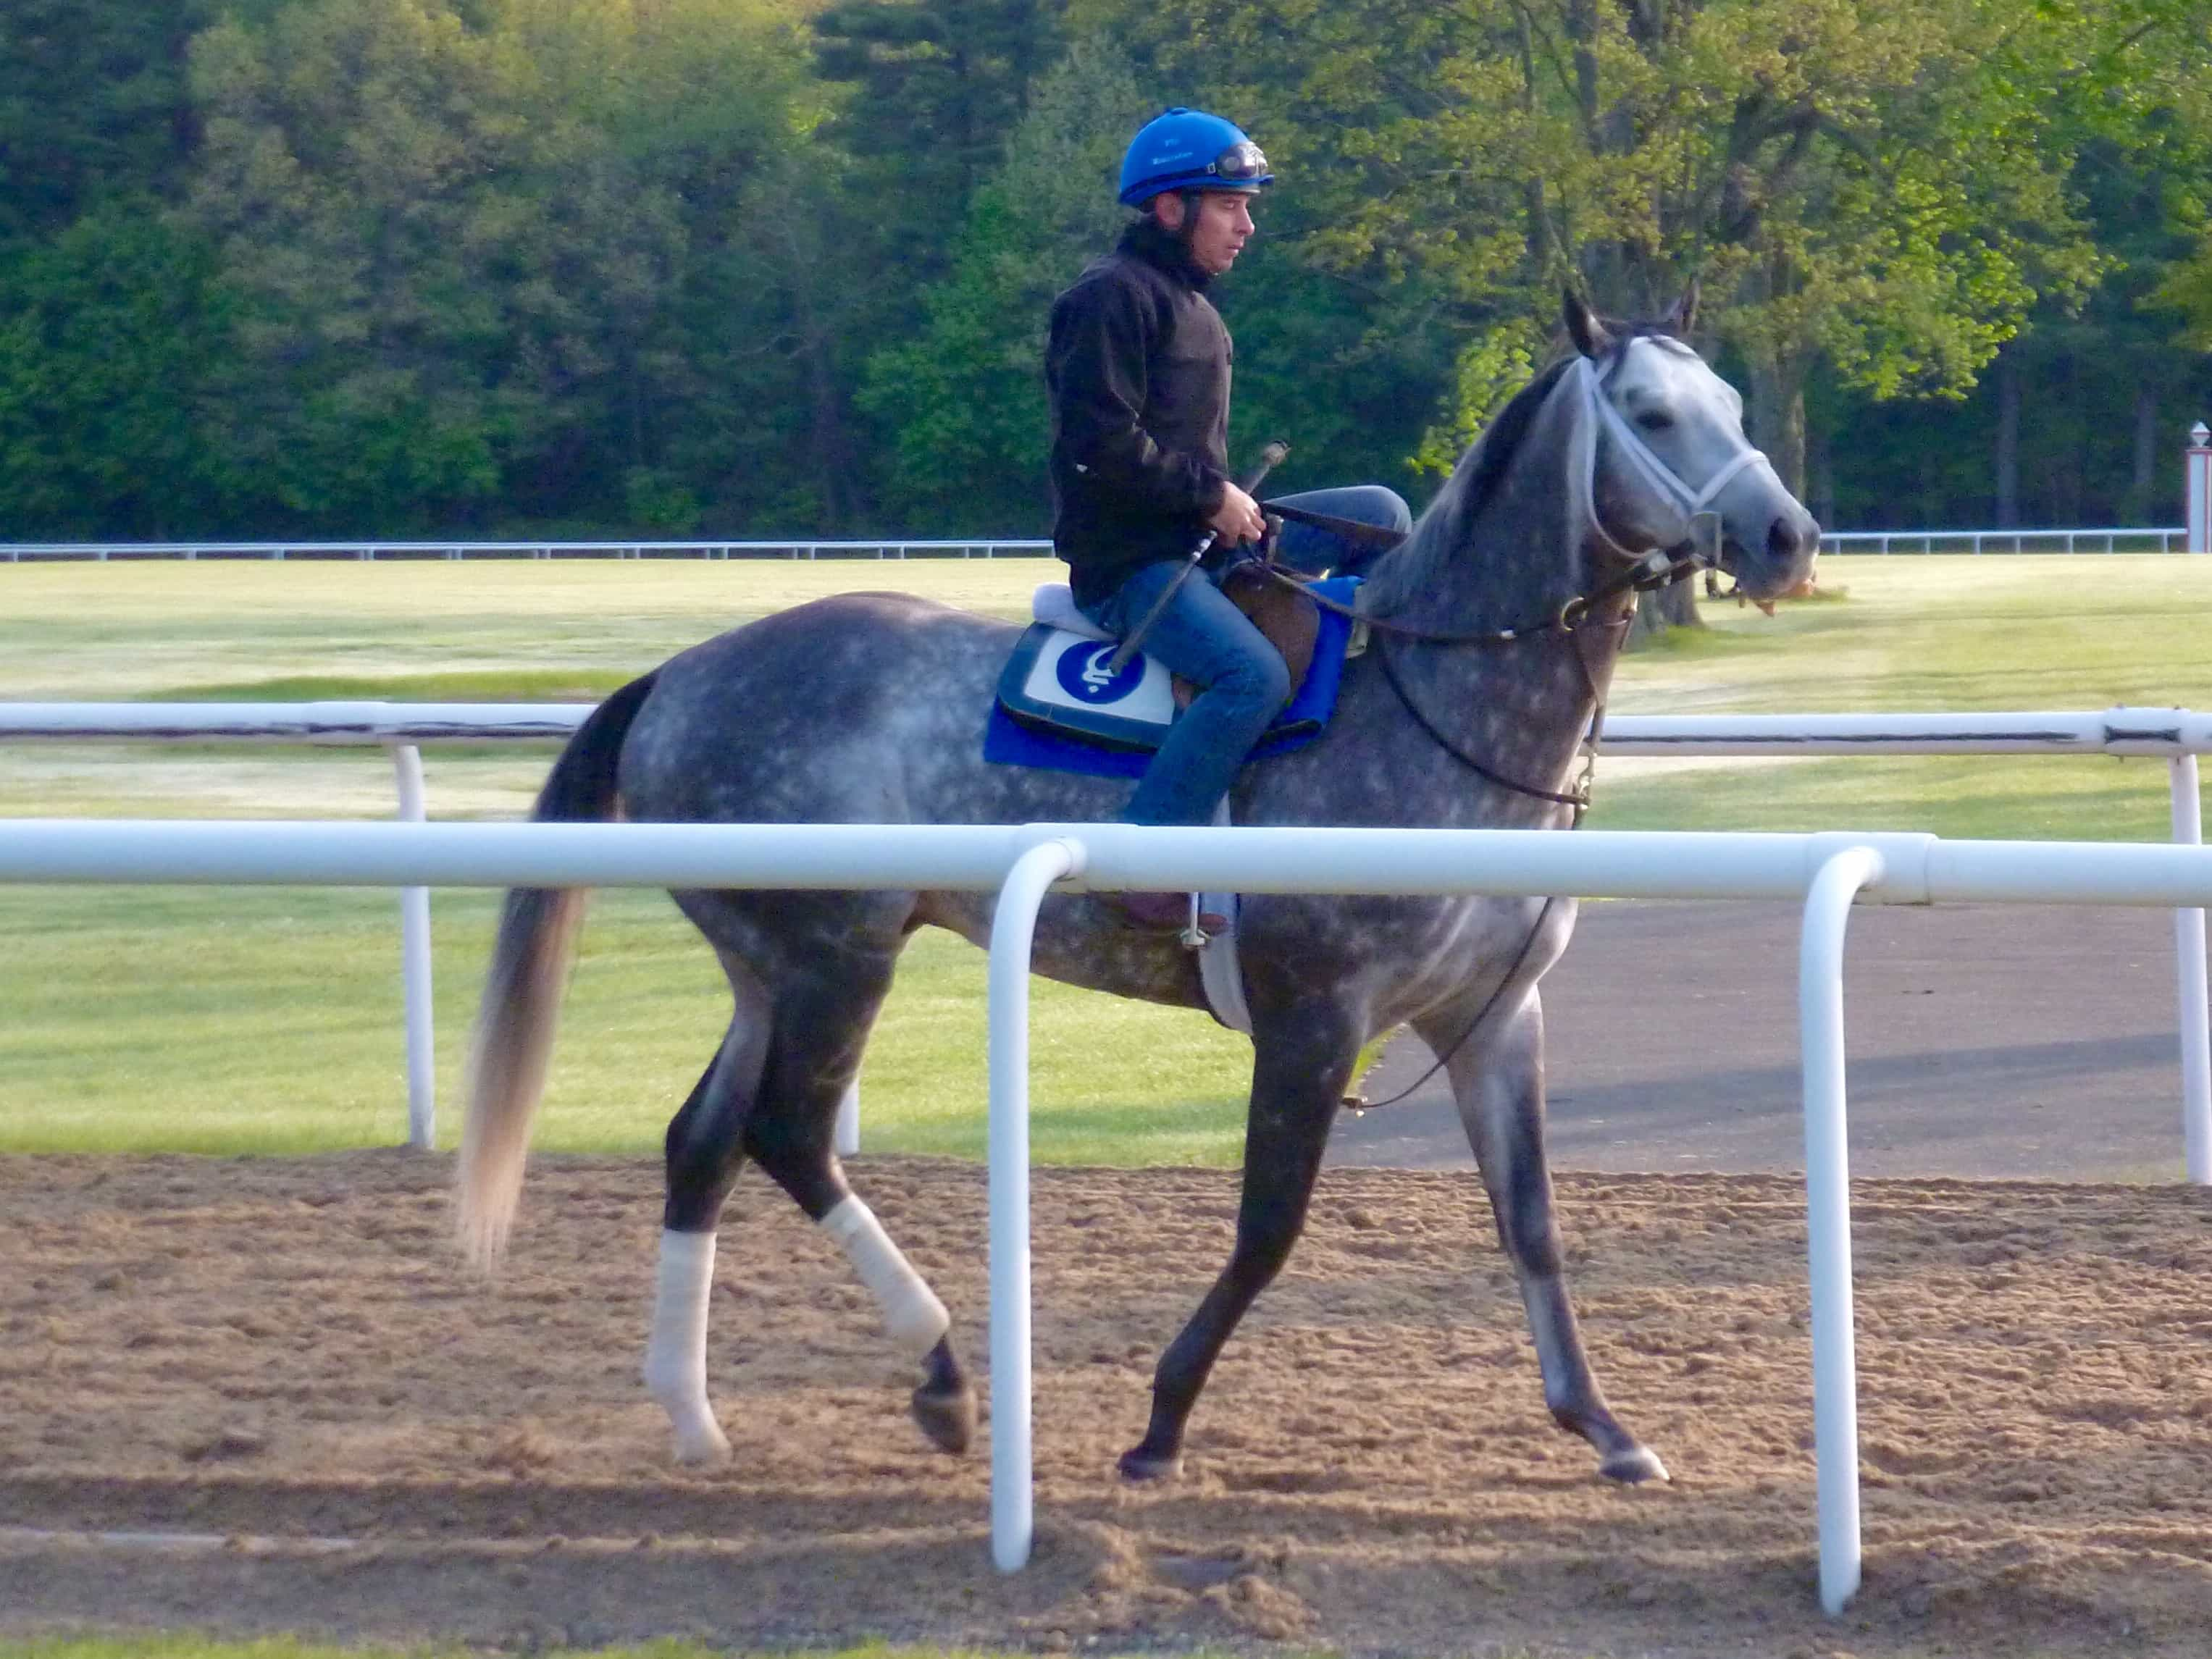 Frosted training in Saratoga - May 20, 2016 - Photo: Michael Spector